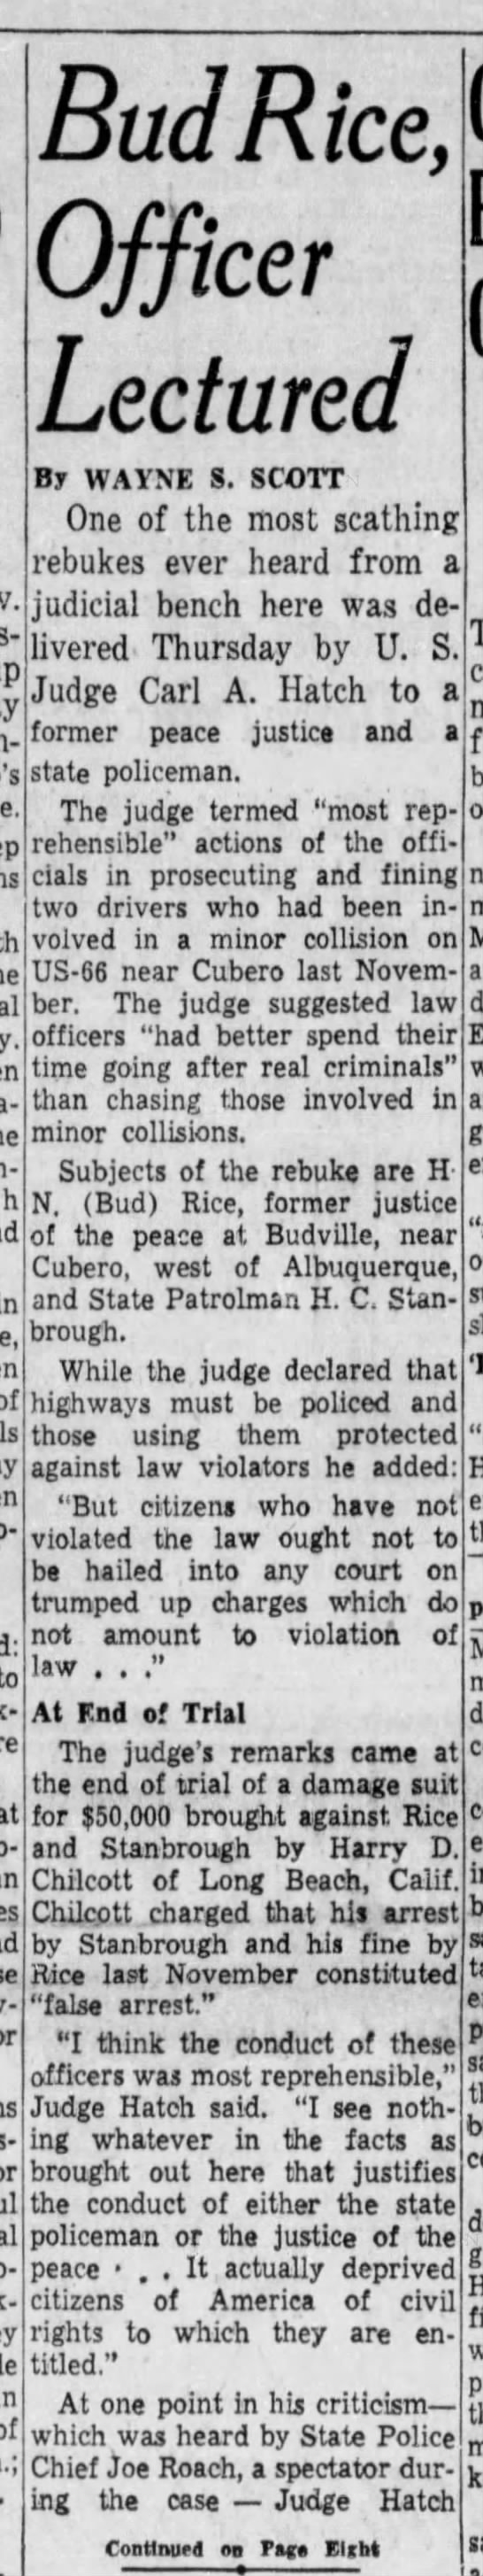 Bud Rice, Officer Lectured by Judge May 27, 1955 Bud Rice of Budville, NM - in of! to Junk-er, of Bud Rice, Officer...